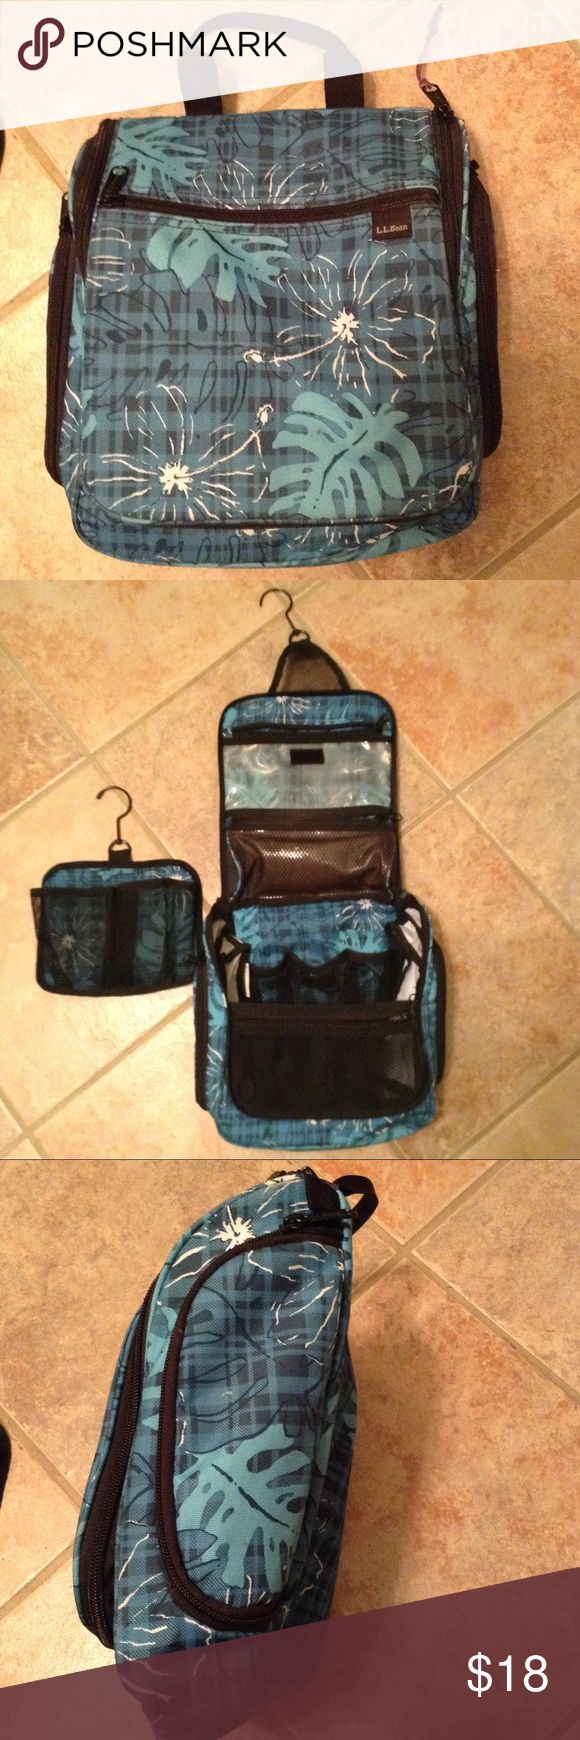 💙💚💙 L.L. Bean Personal Organizer 💙💚💙 Hinged design and built in hook allows you to hang it anywhere. Many zip and mesh pockets provide ample storage in this most popular medium sized organizer. Pretty teal leaf & flower pattern is no longer offered.  No mirror.  In good used condition. L.L. Bean Bags Cosmetic Bags & Cases